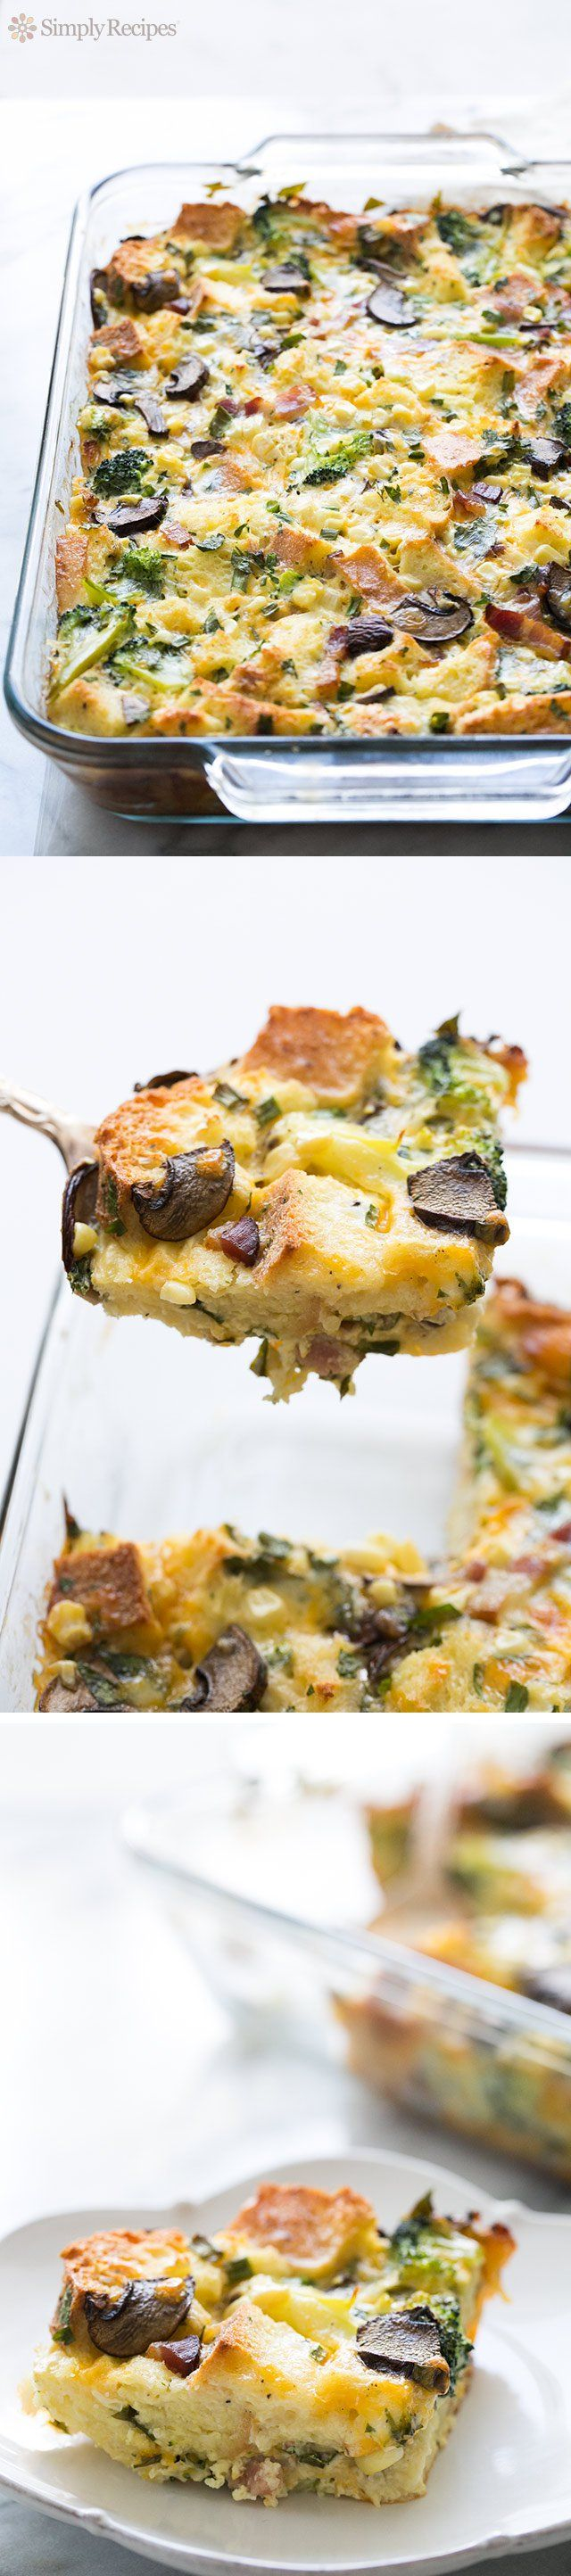 As-You-Like-It Breakfast Casserole - Easy-to-make breakfast casserole, with eggs, cheese, milk, and bread, baked with your favorite mix-ins - sausage, bacon, ham, mushrooms, veggies.